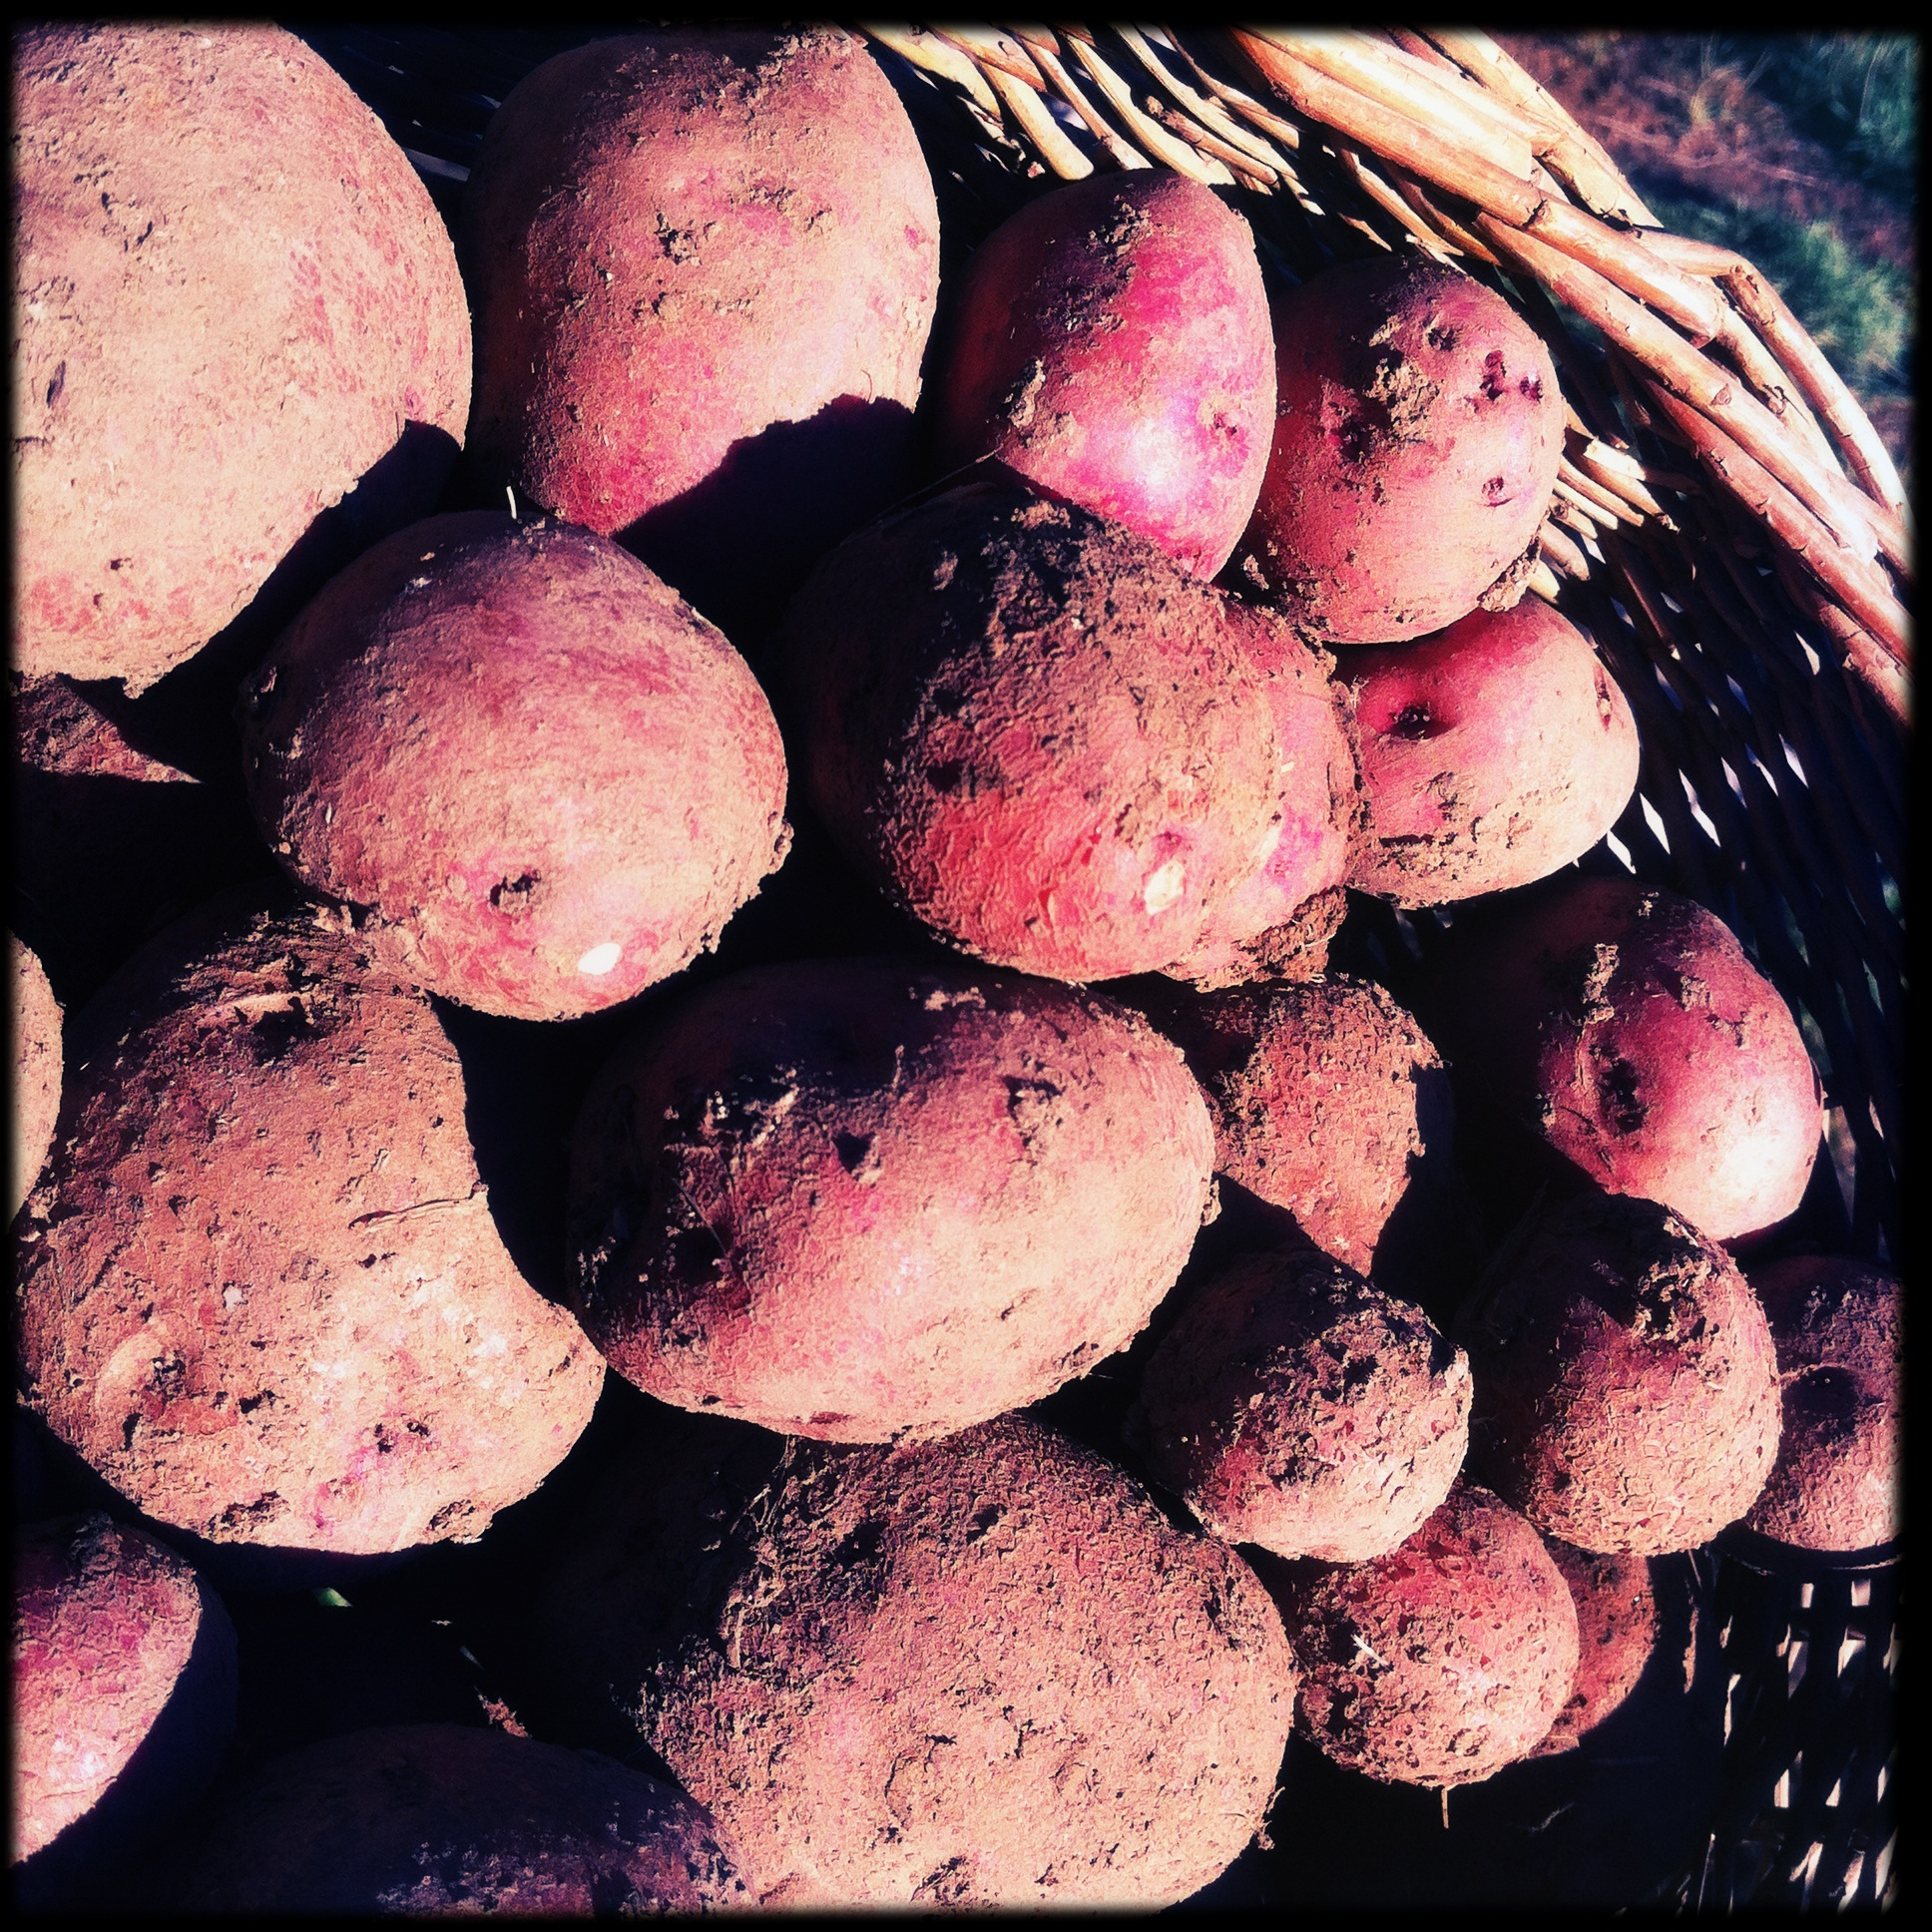 Second harvest of Sangre de Cristo potatoes yields abundant spuds. Allegedly good keepers, we'll see.